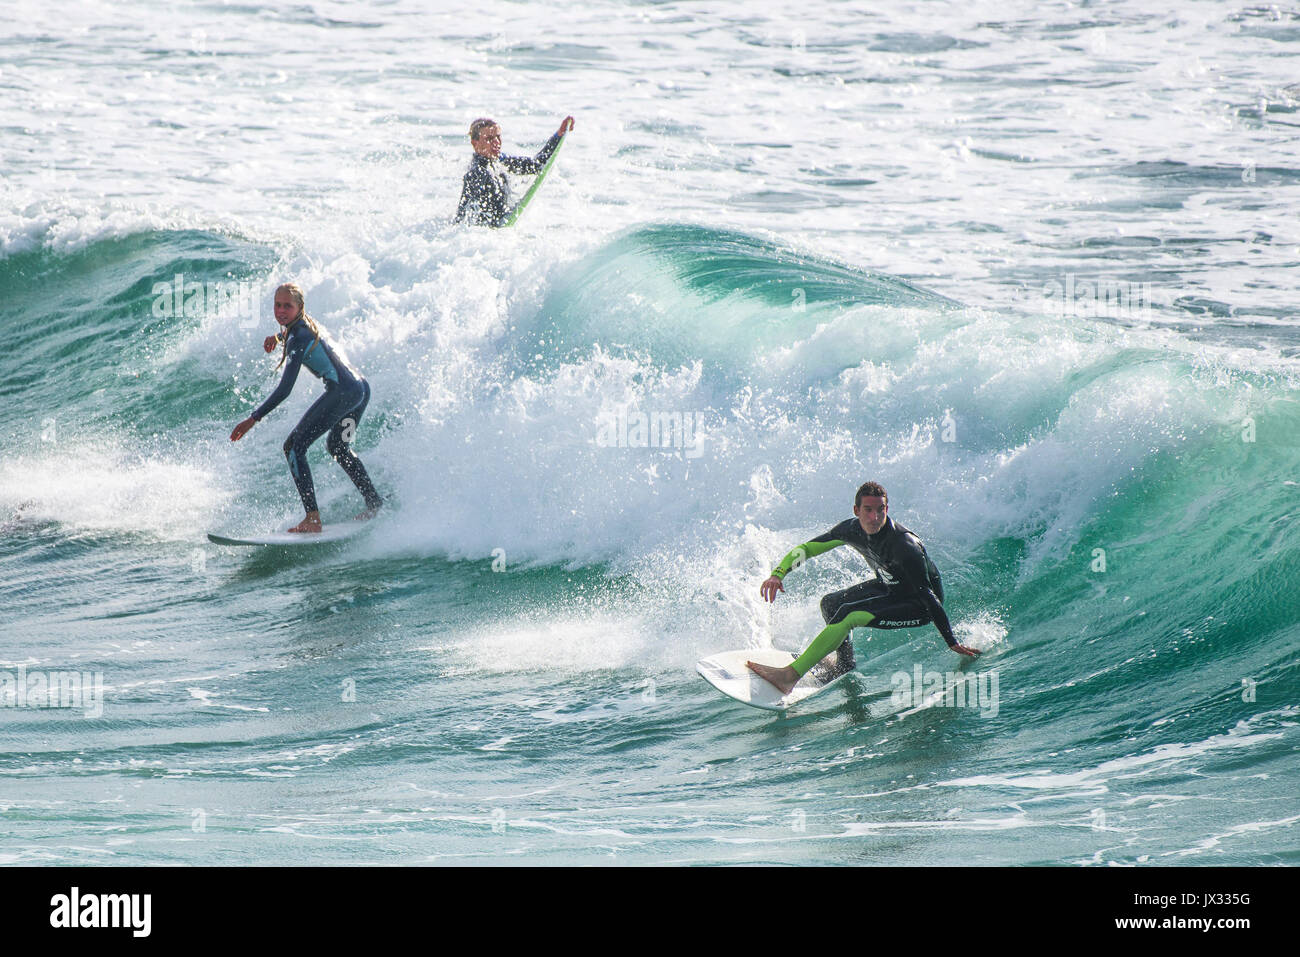 UK Surf. La vague à Surfers dans Fistral Newquay, Cornwall. Photo Stock